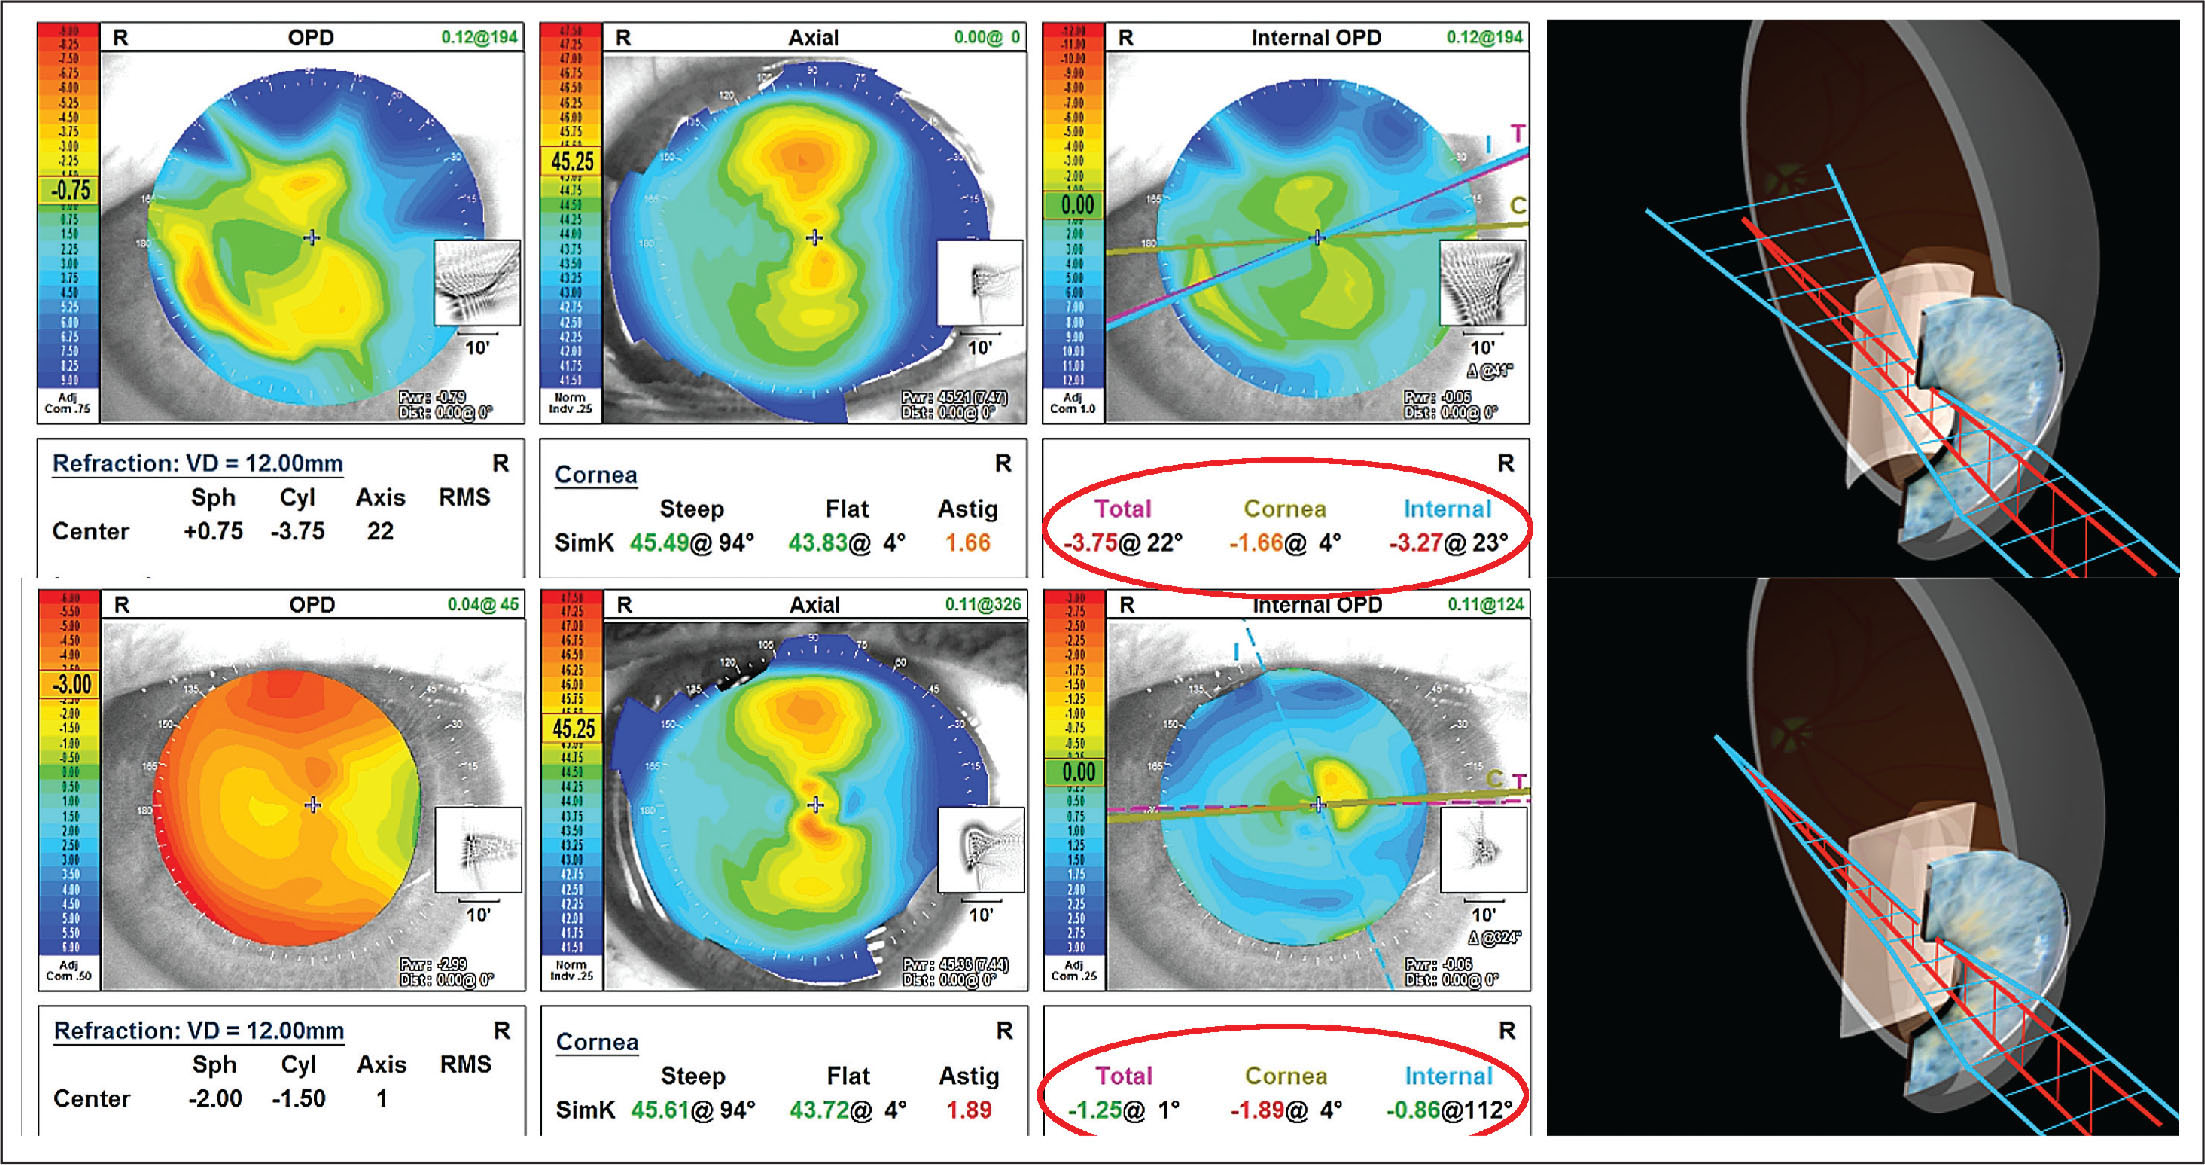 OPD-scan III (Nidek, Gamagori, Japan) representation of total (first column), corneal (second column), and internal astigmatism (third column) before (top) and after (bottom) Nd:YAG capsulotomy. Red ellipses show numeric changes in total, corneal, and internal astigmatism before and after capsulotomy. After capsulotomy, the corneal component remains almost constant, whereas total astigmatism is reduced and is represented mainly by the corneal astigmatism. Three-dimensional representation (fourth column) shows the bended IOL before (top) and after (bottom) laser capsulotomy. Light rays refracted by the IOL steep and flat axes are represented in blue and red, respectively. (Illustrations by Damien Gatinel.)